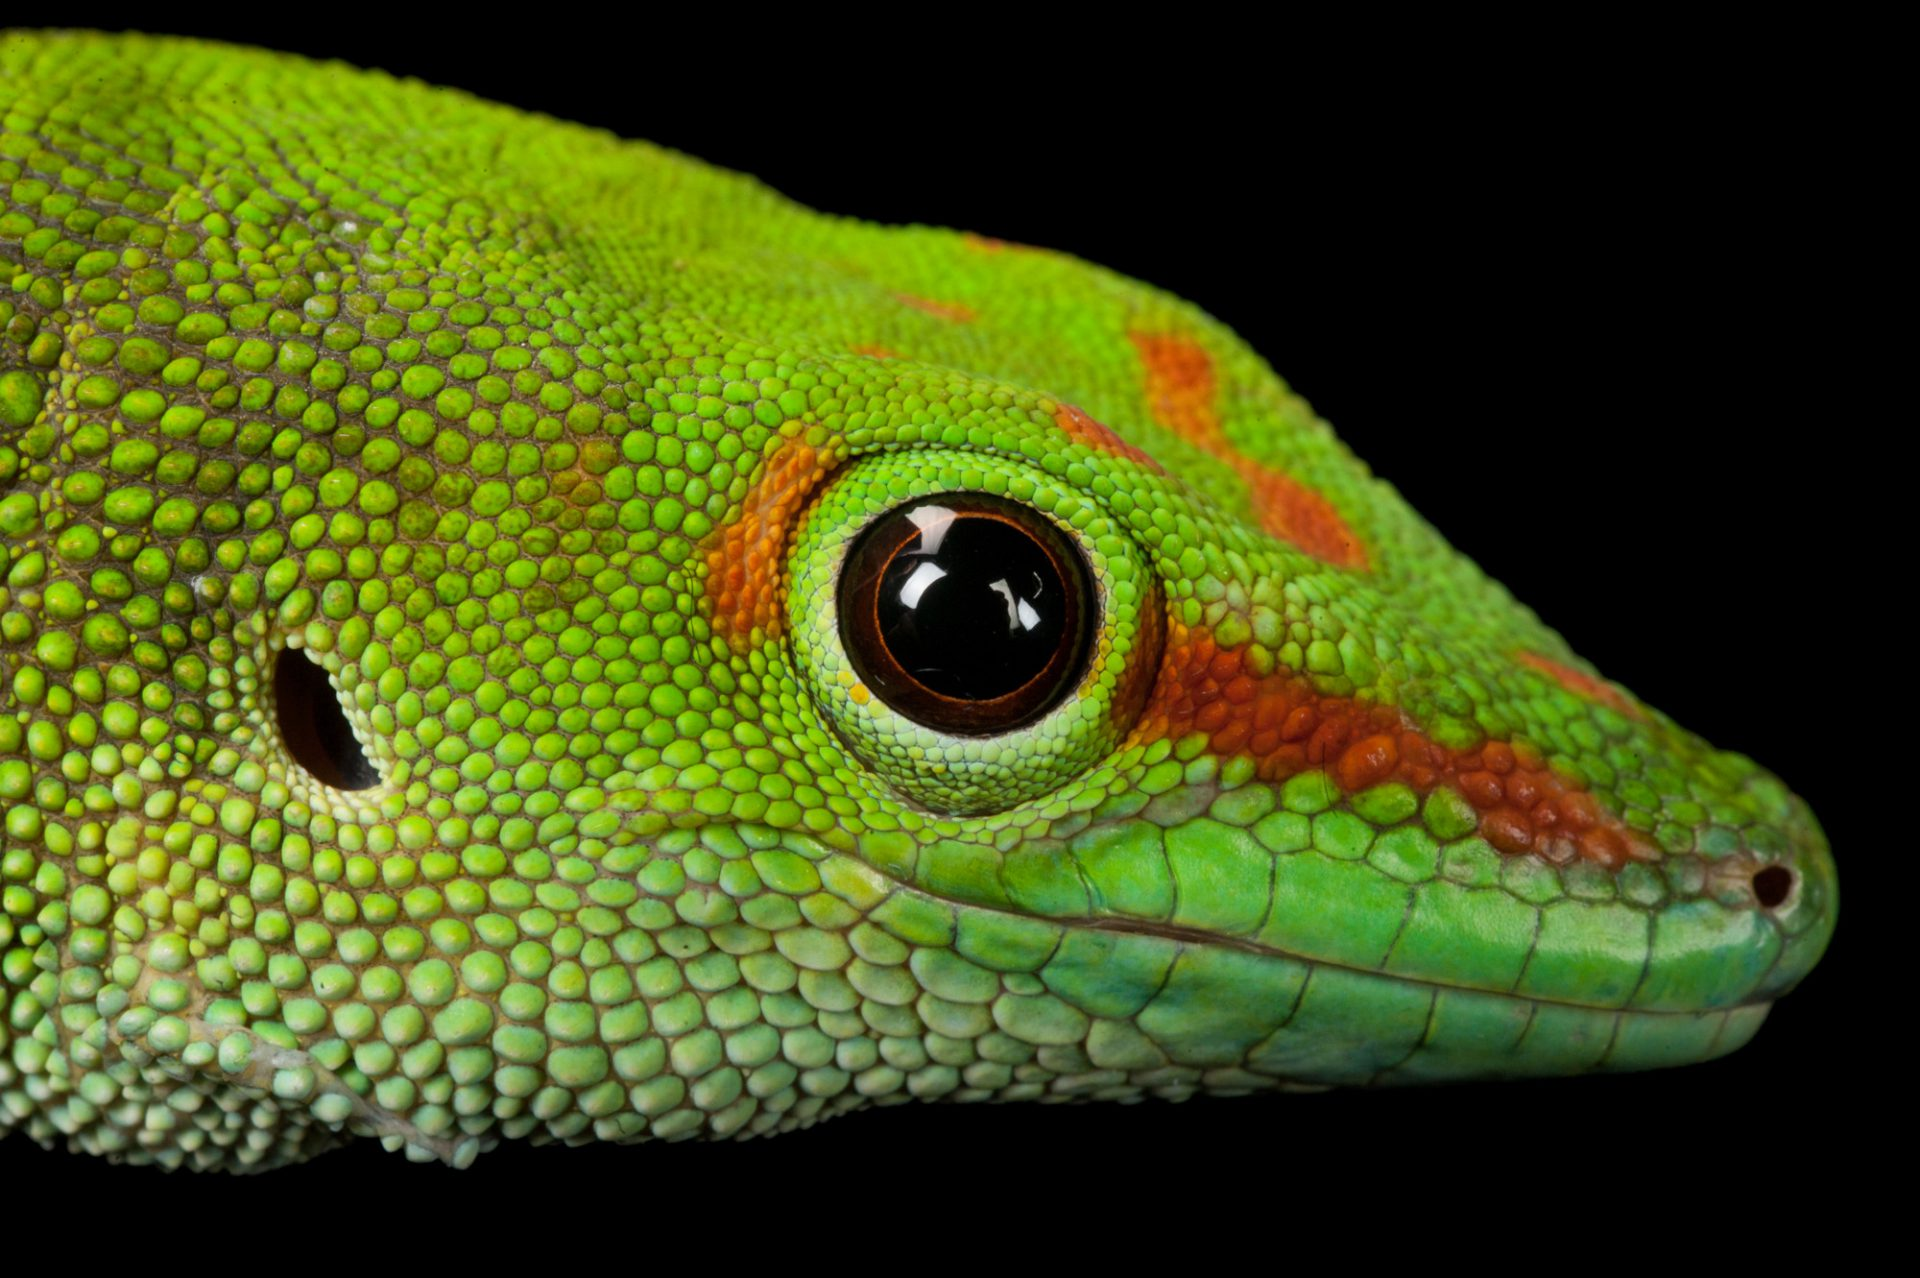 Photo: Madagascar giant day gecko (Phelsuma gradis) at the Sedgwick County Zoo in Wichita, Kansas.